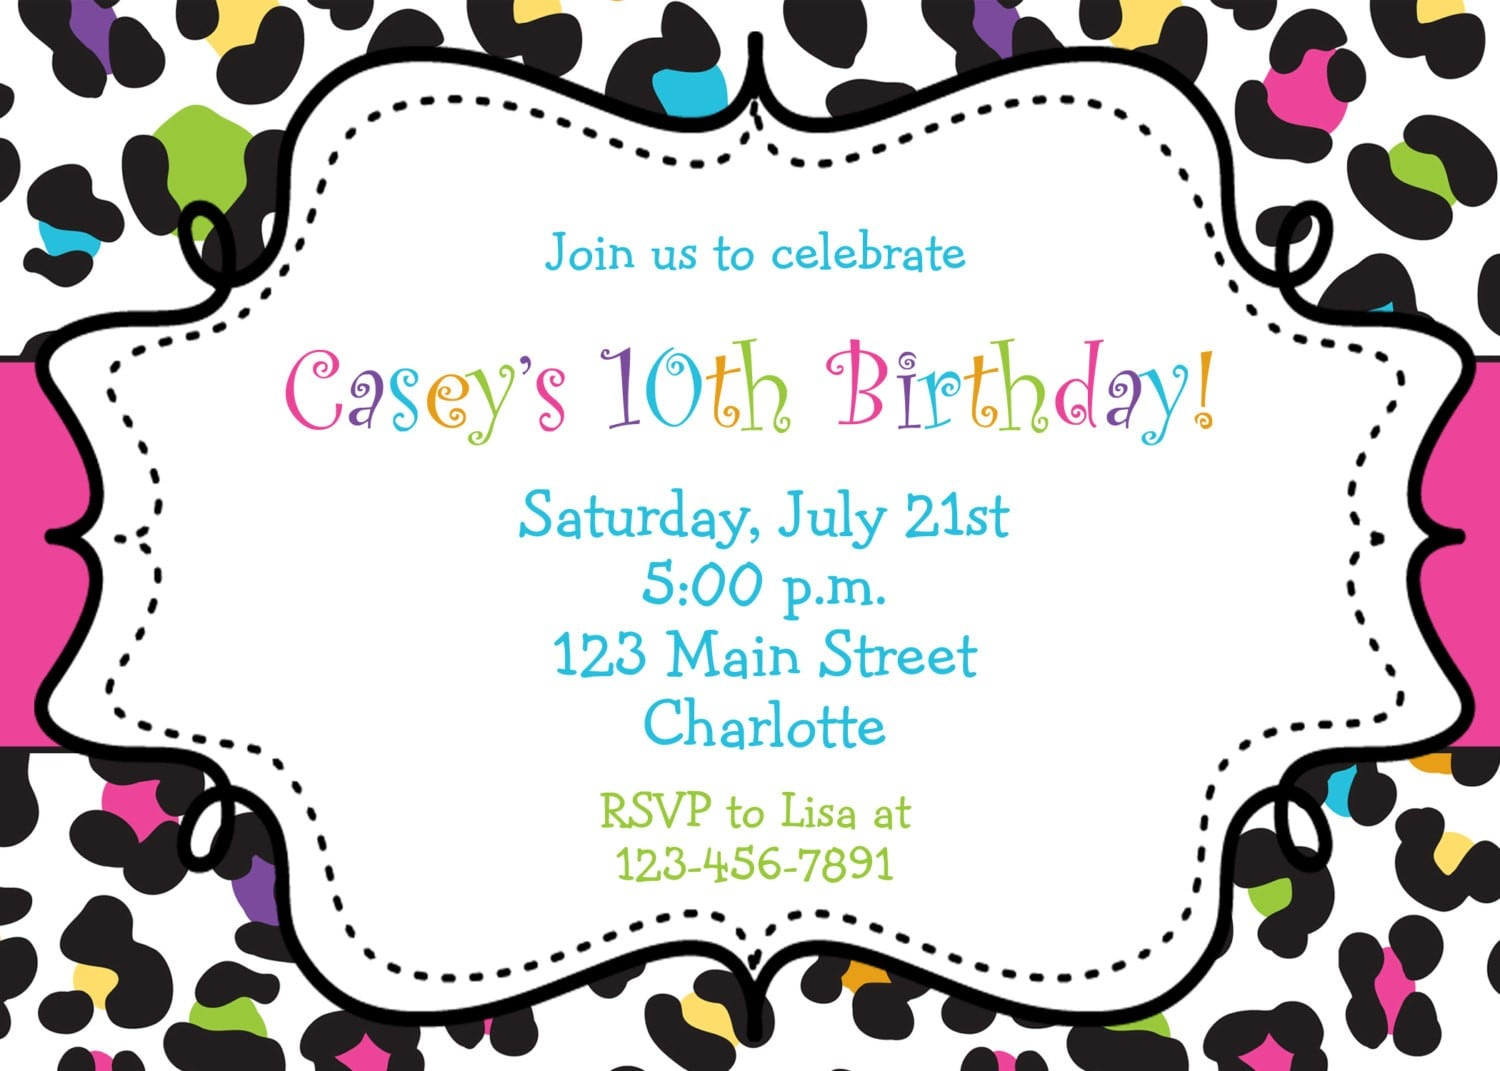 Fabulous Party Invitations Like Amazing Article Happy Party For